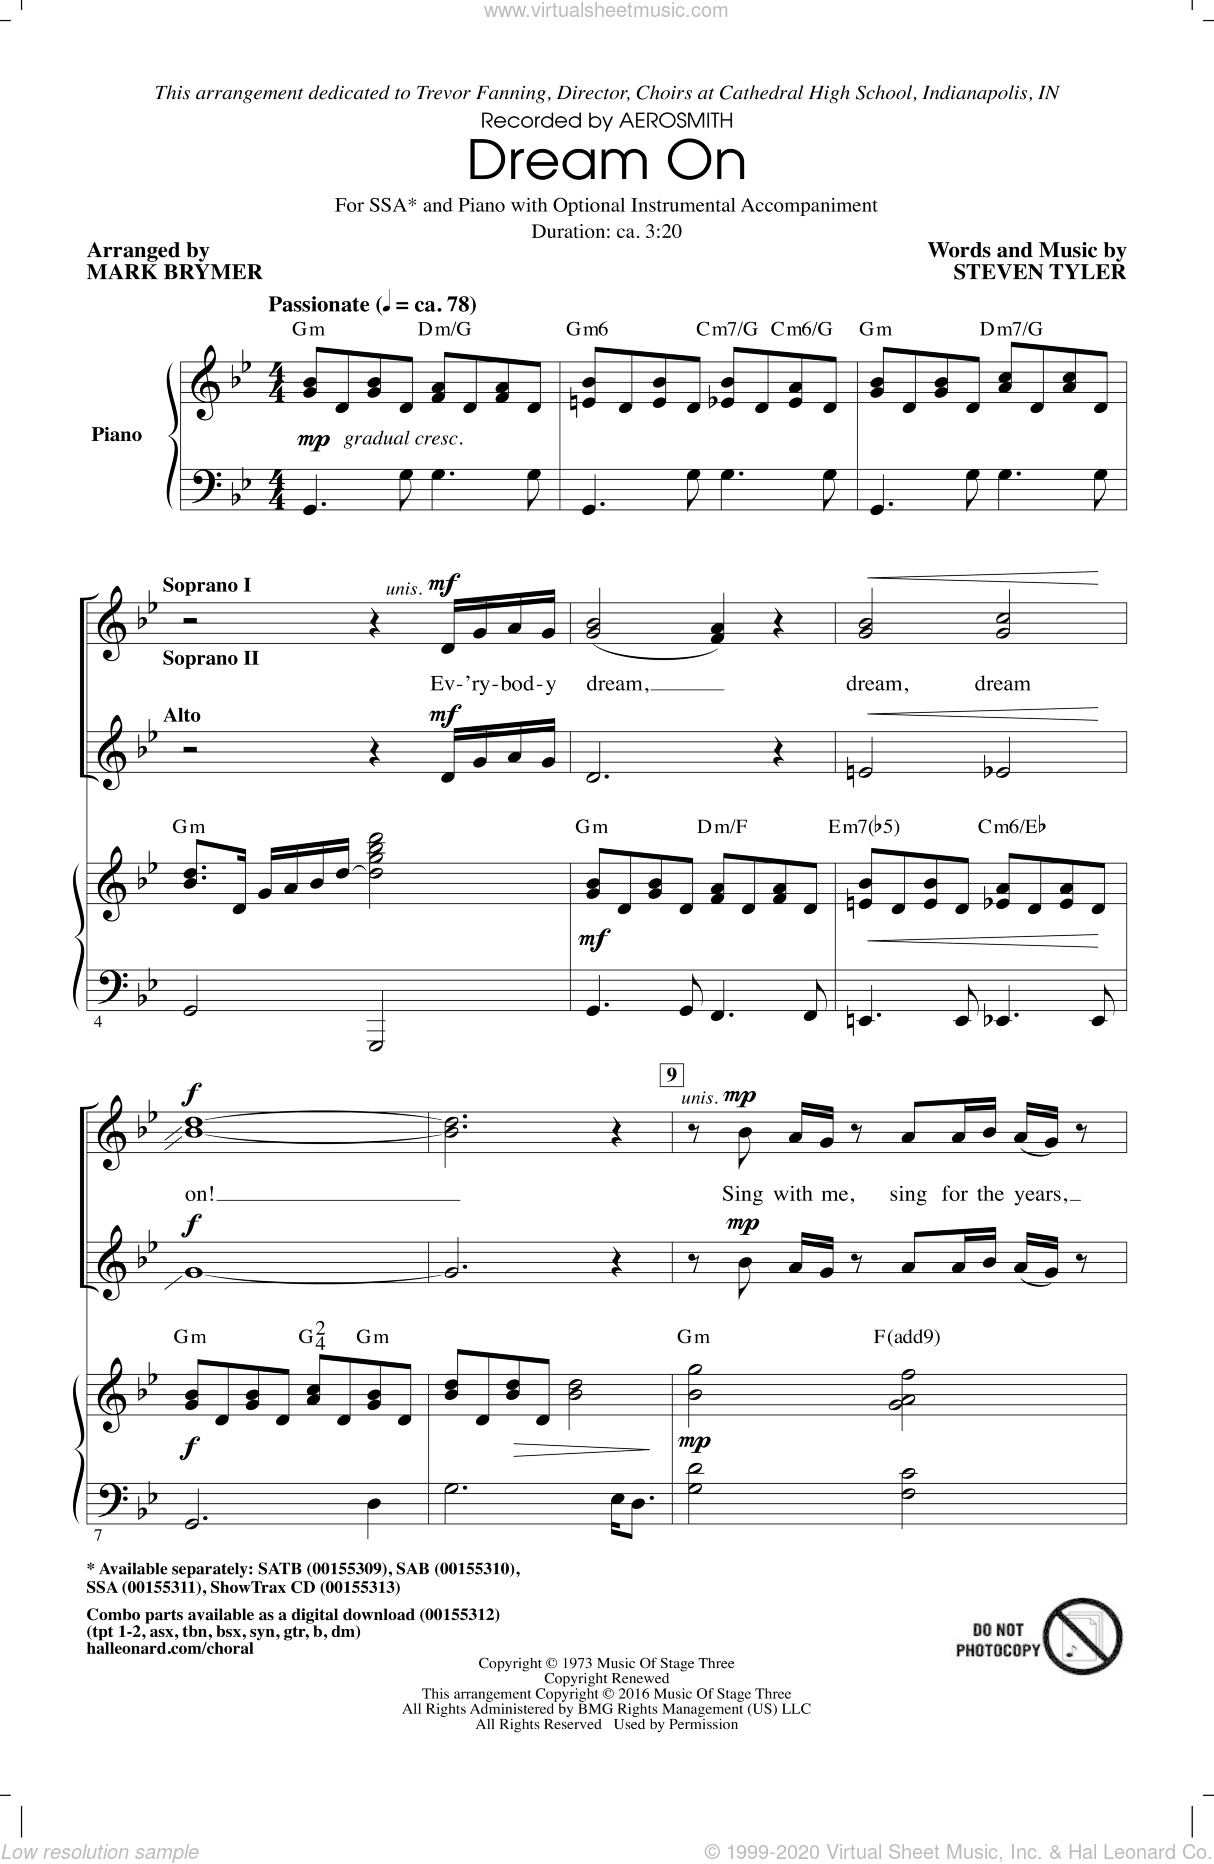 Dream On sheet music for choir (soprano voice, alto voice, choir) by Steven Tyler, Mark Brymer and Aerosmith. Score Image Preview.